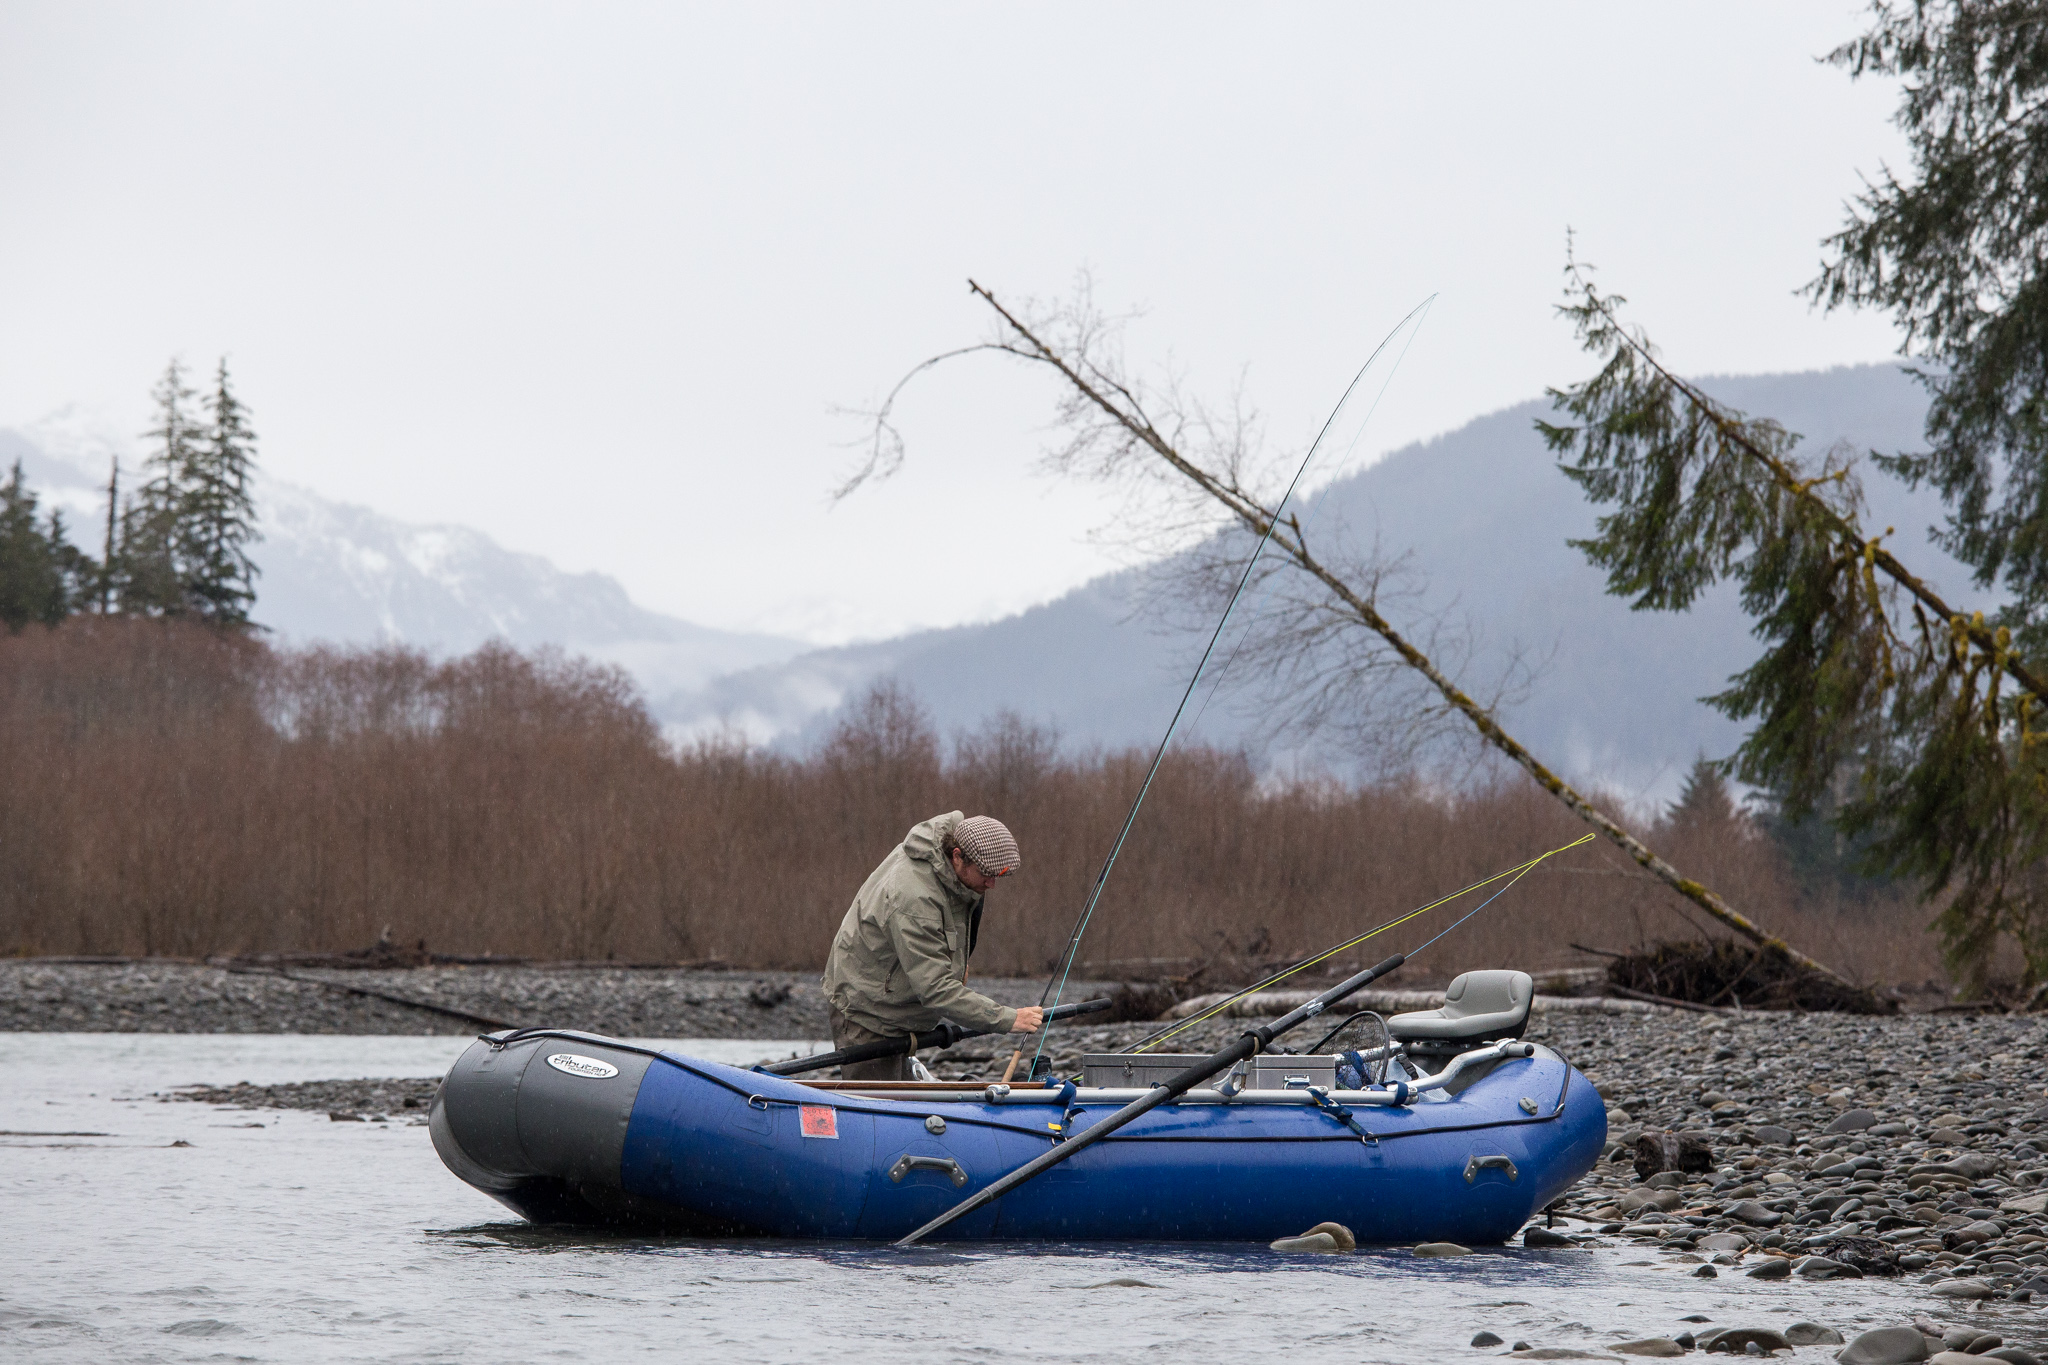 Hoh River Fly Fishing Guide Service